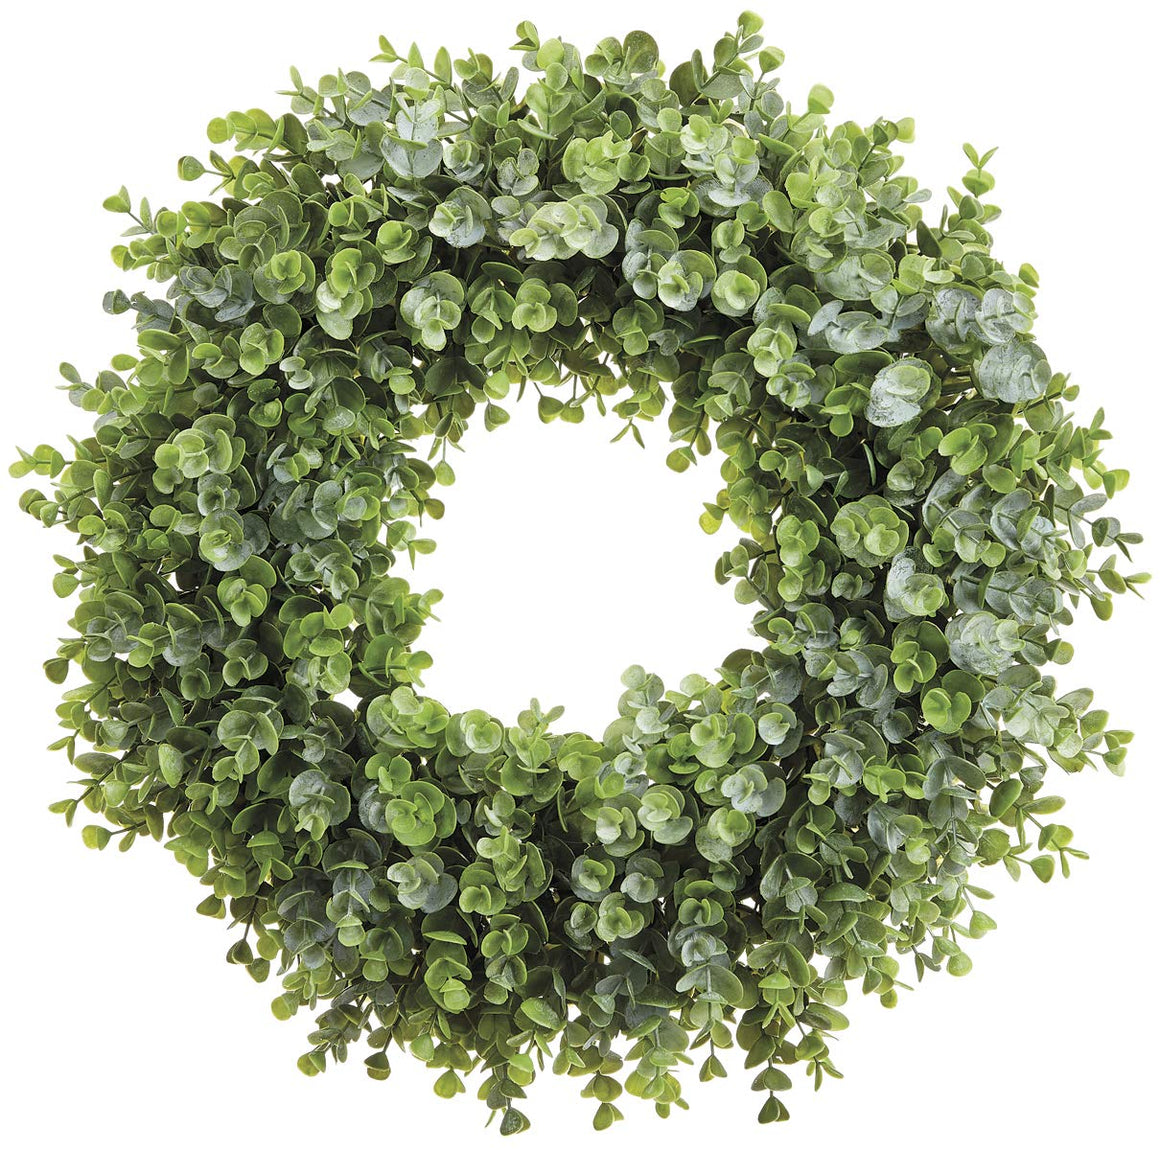 Allstate 19 Inch Artificial Indoor/Outdoor Eucalyptus Wreath